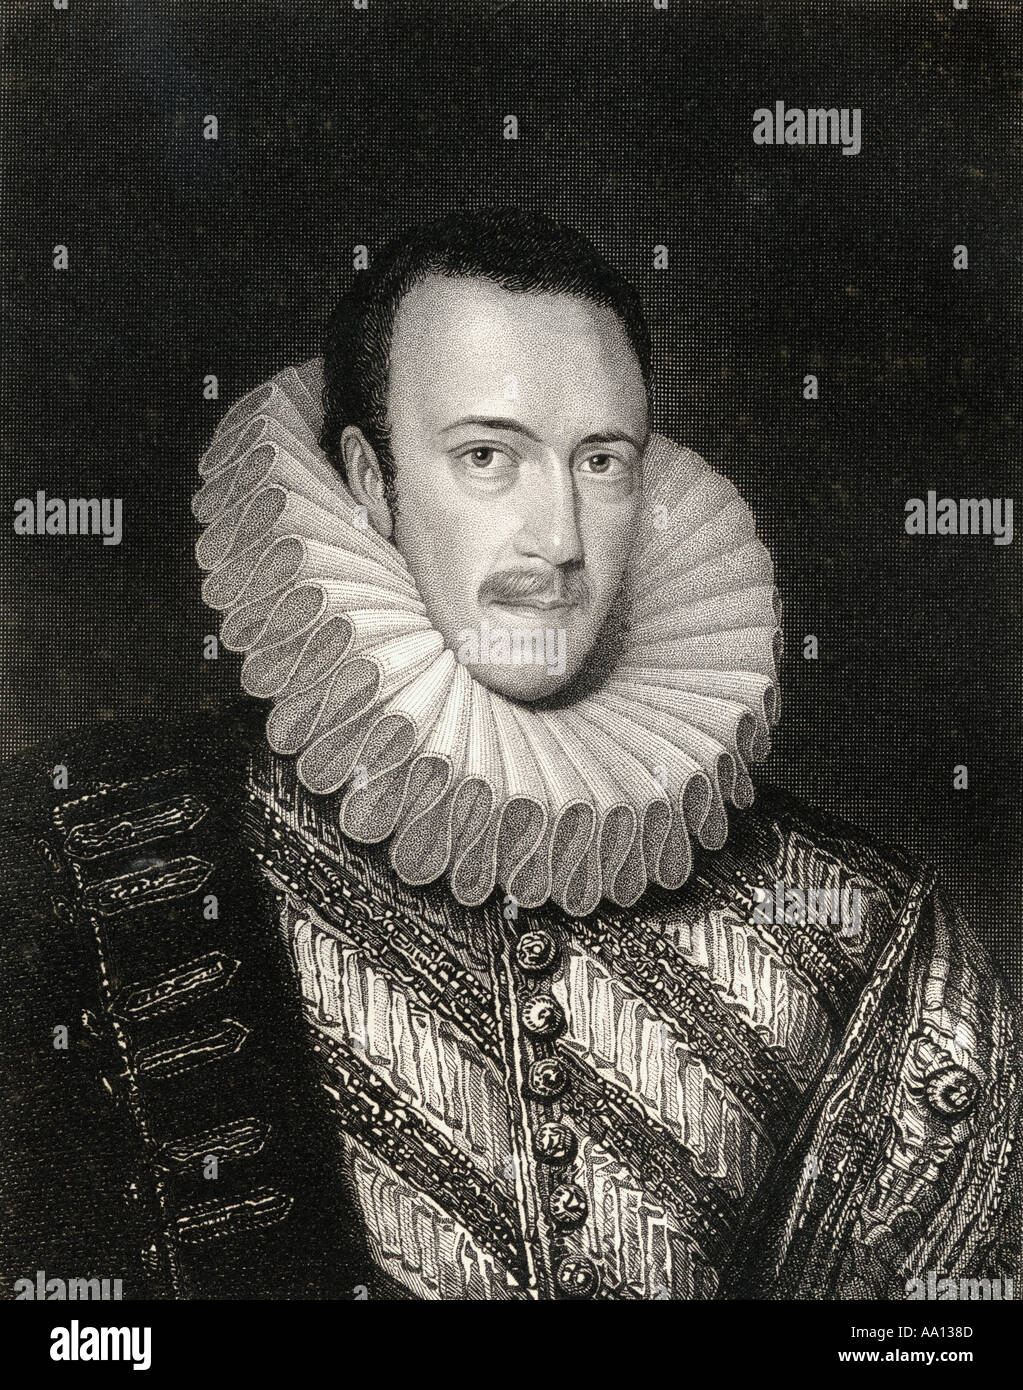 Philip Howard, 20th Earl of Arundel, Earl of Surrey, 1557-1595. English nobleman canonised  as one of the Forty Martyrs of England and Wales. - Stock Image